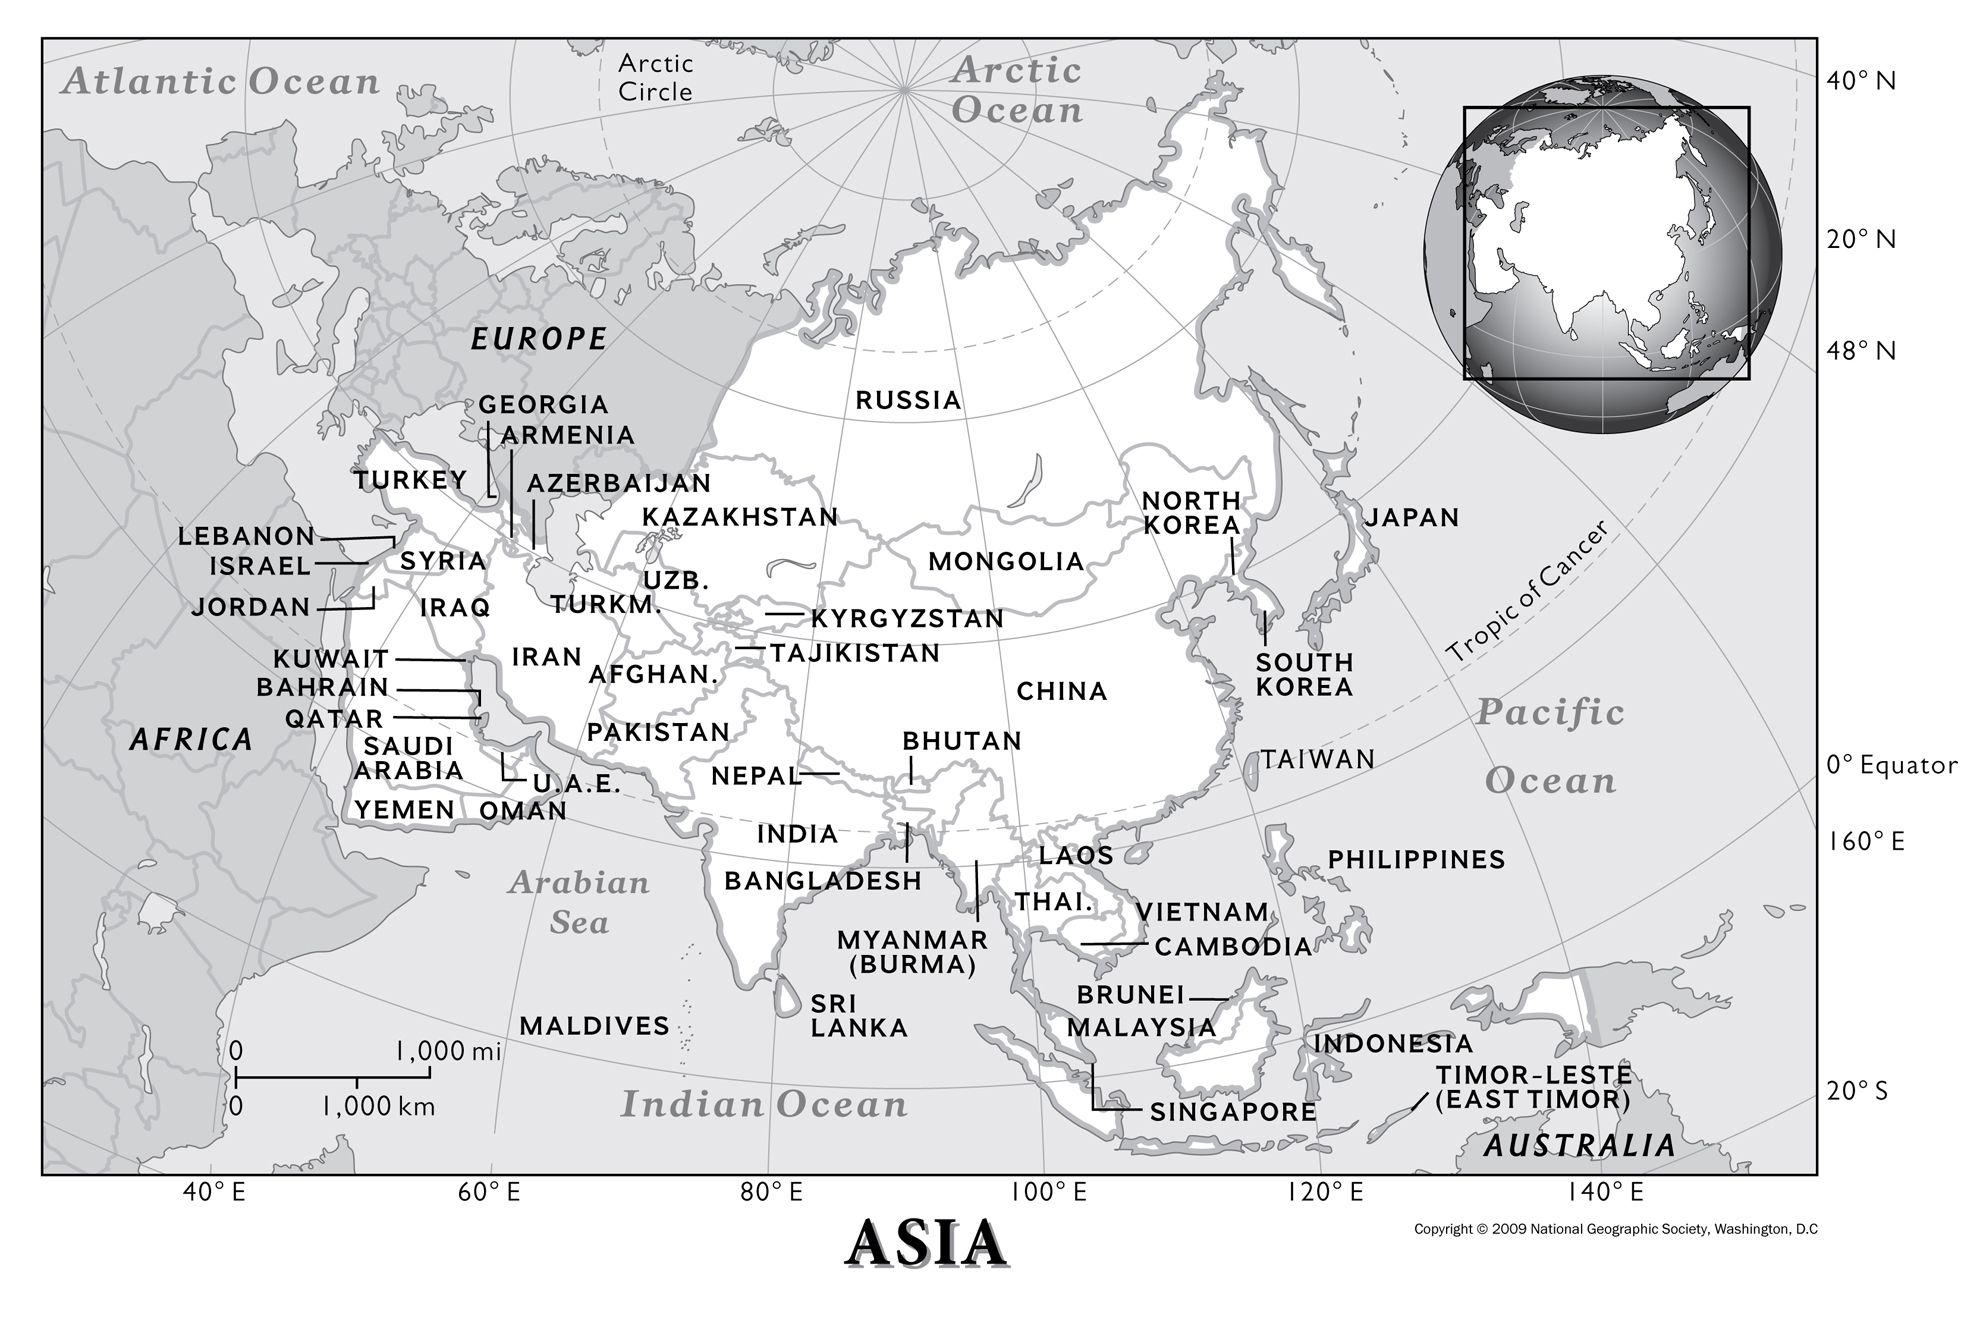 Map Of Monsoon Asia Countries.Asia Resources National Geographic Society